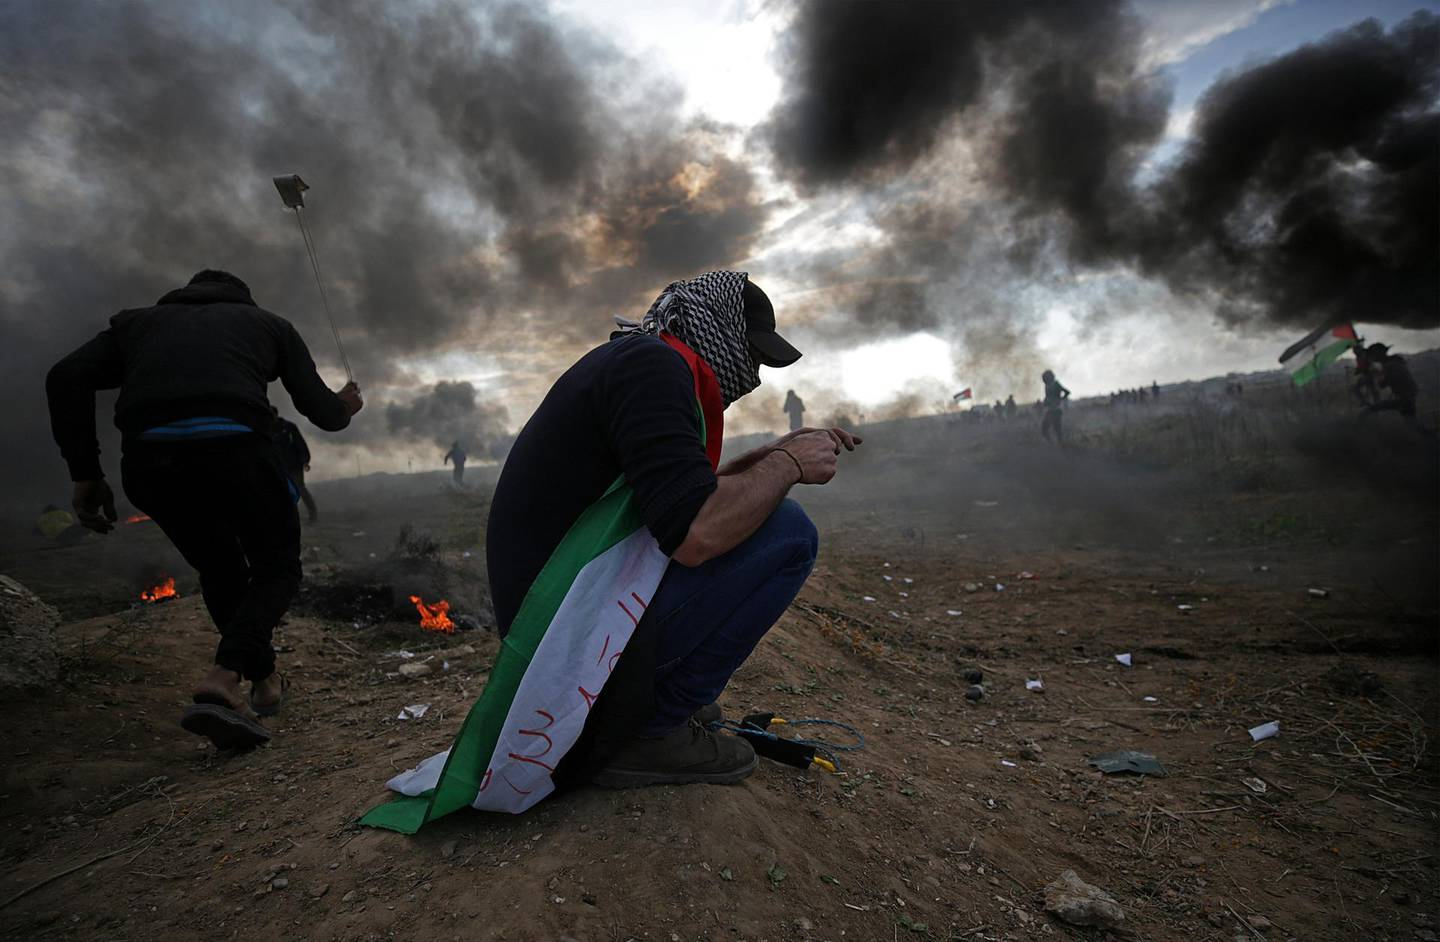 epa06392274 Palestinian protesters throw stones at Israeli troops during clashes near the border with Israel, against US President decision to recognize Jerusalem as the capital of Israel, in the east of Gaza City, 15 December 2017. Two Palestinians were killed during the clashes in the east of Gaza Strip. US president Donald J. Trump on 06 December announced he is recognizing Jerusalem as the Israel capital and will relocate the US embassy from Tel Aviv to Jerusalem.  EPA/MOHAMMED SABER